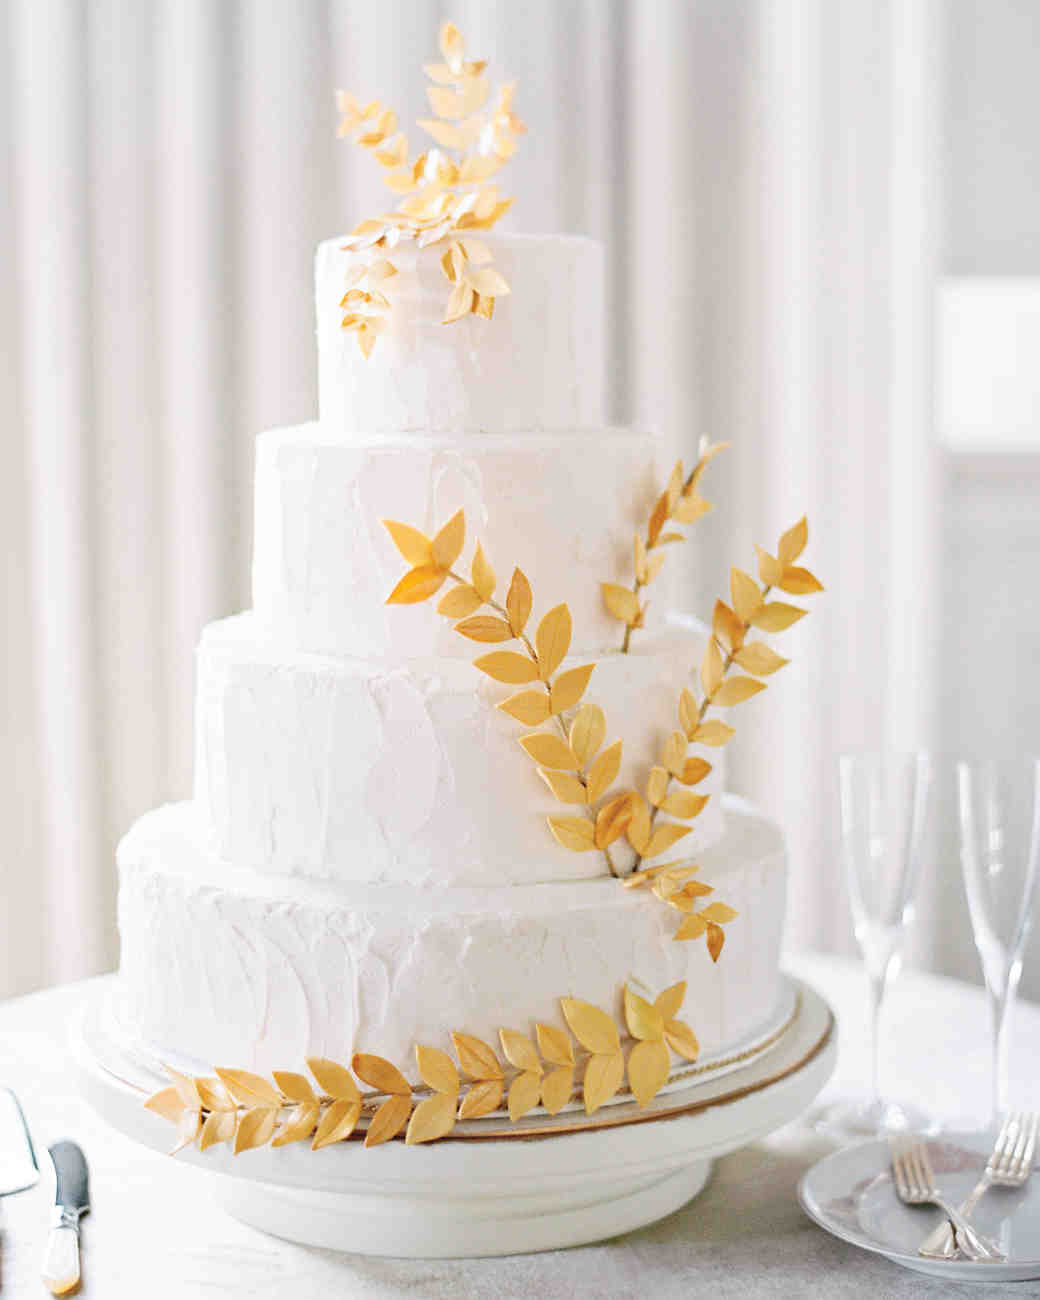 White Cake with Gold Leaf Accents